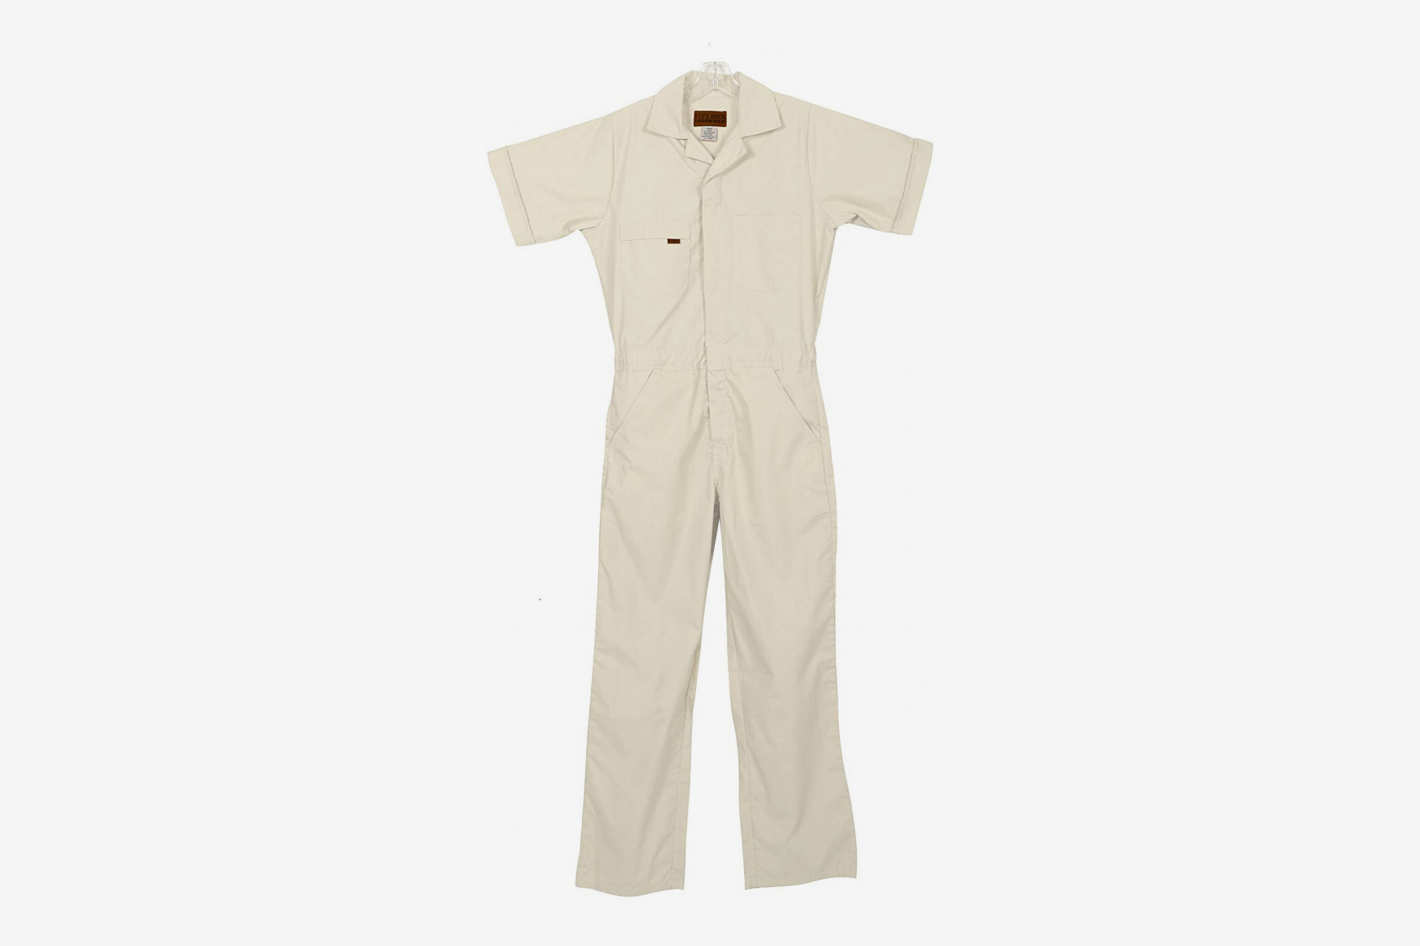 Five Rock Poplin Short Sleeve Unlined Coveralls